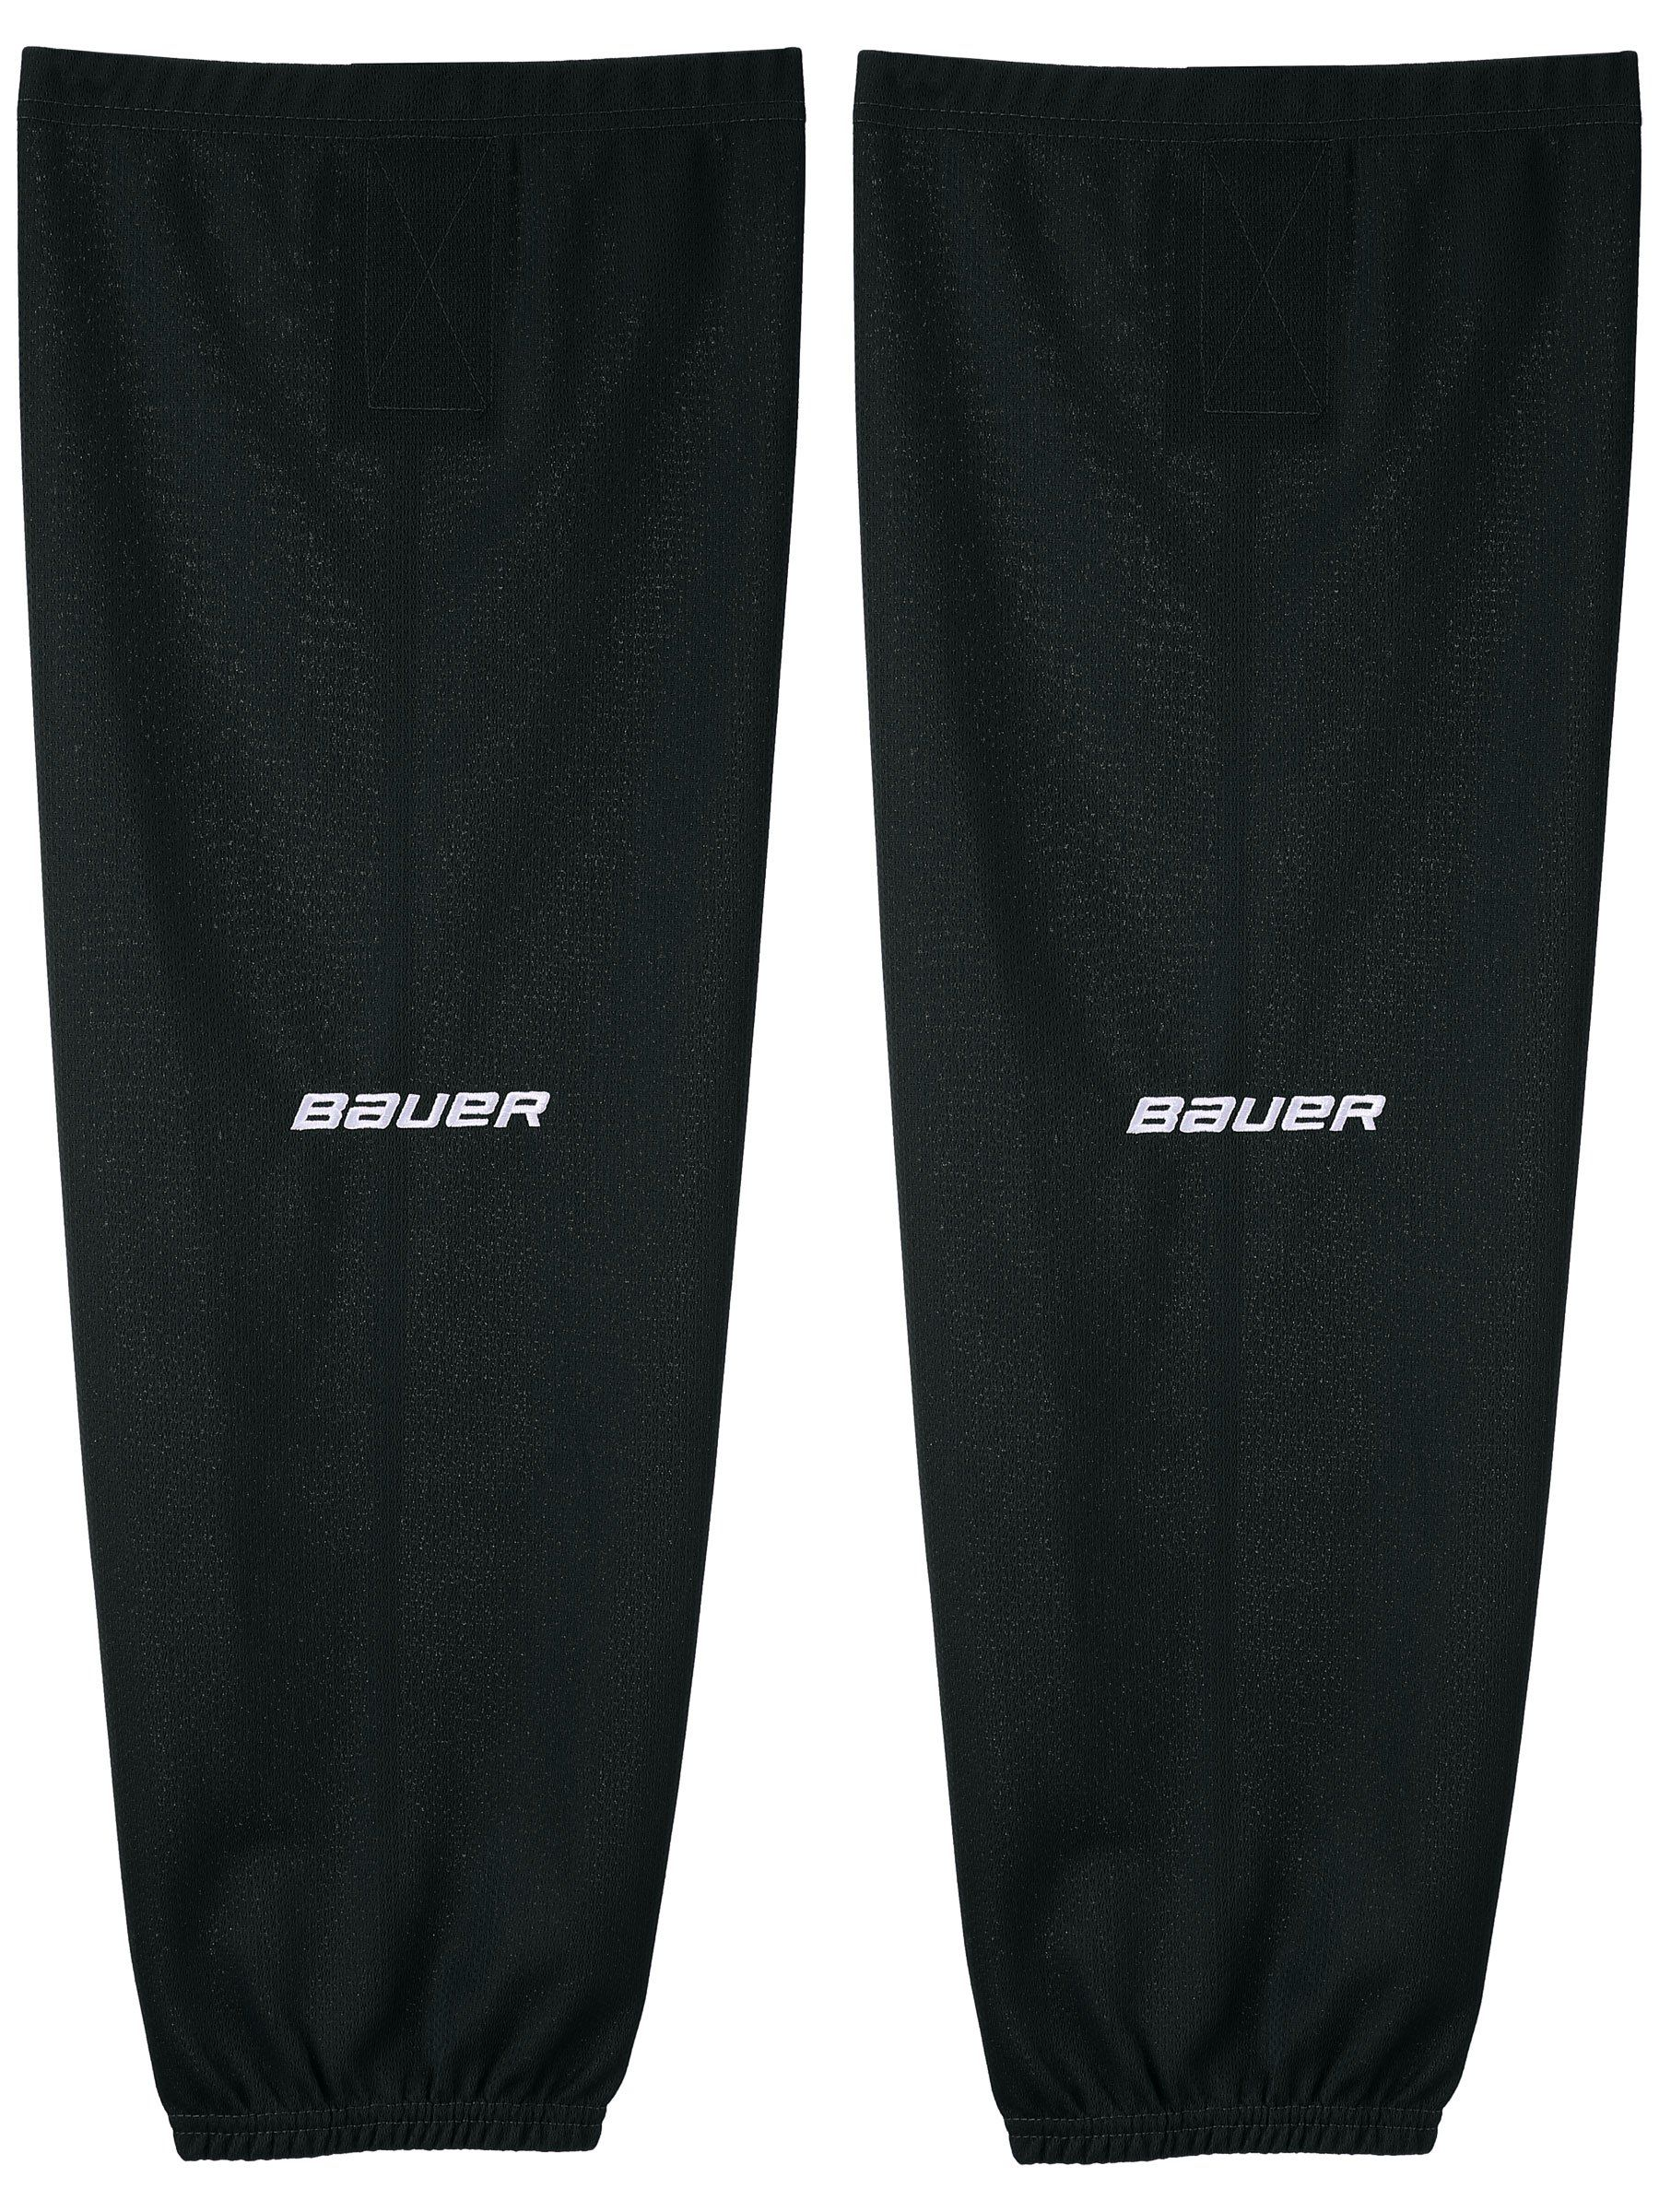 ГАМАШИ BAUER 600 HOCKEY SOCK YTH от магазина SPHF.ru